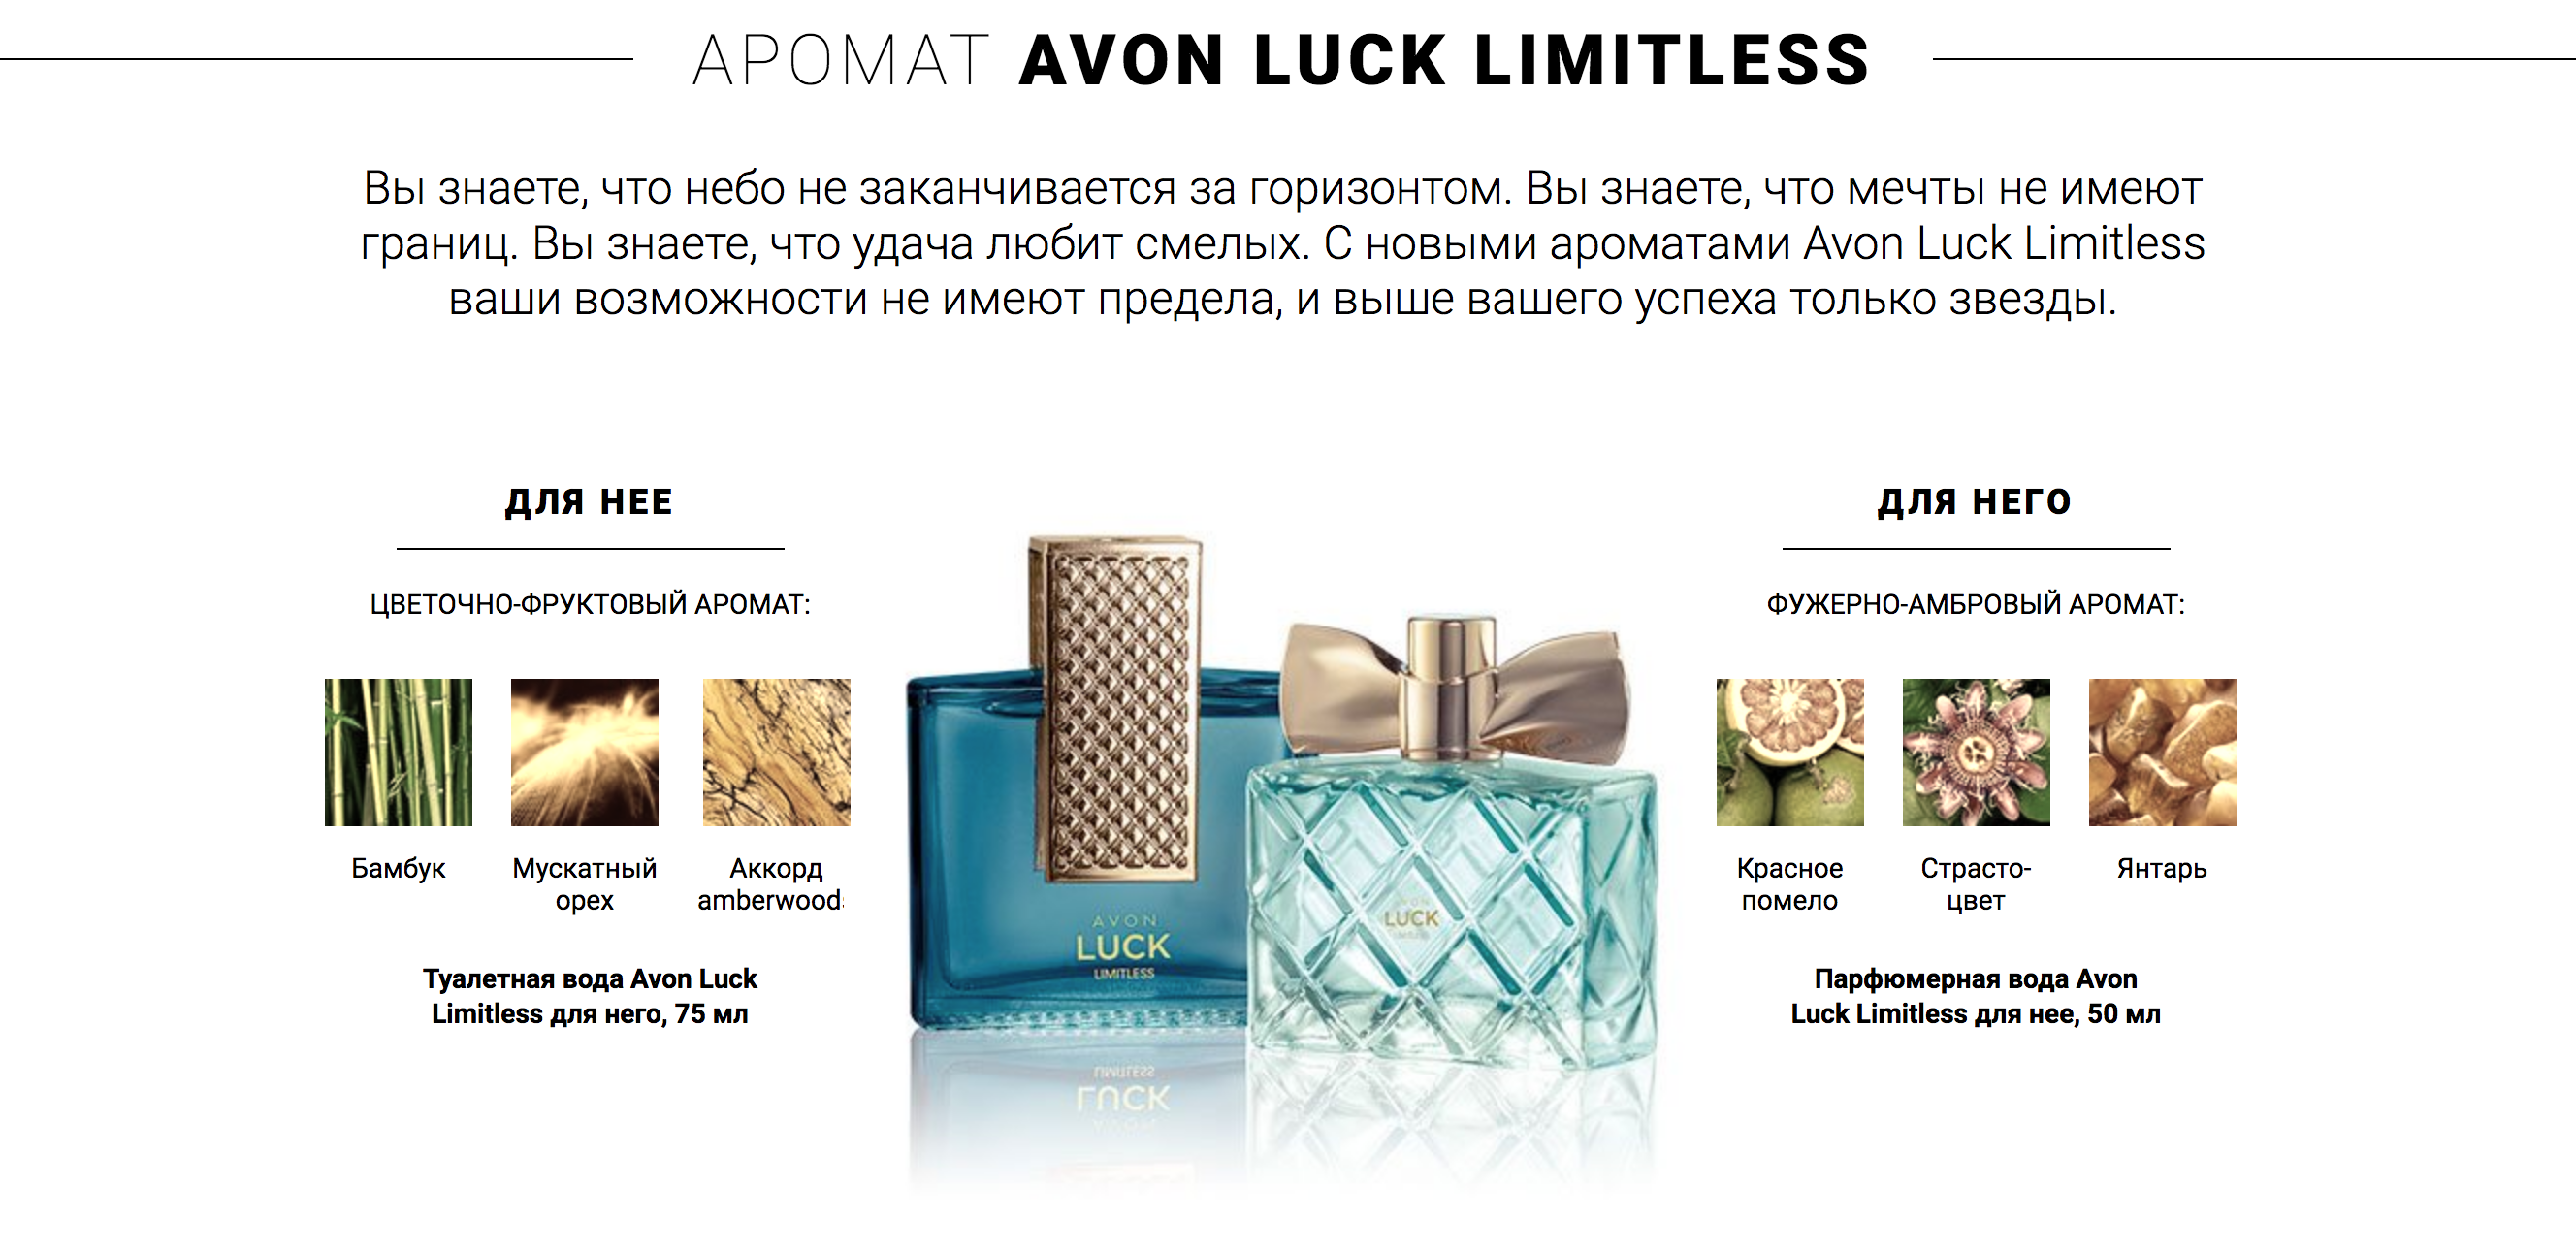 АРОМАТ AVON luck Limitless